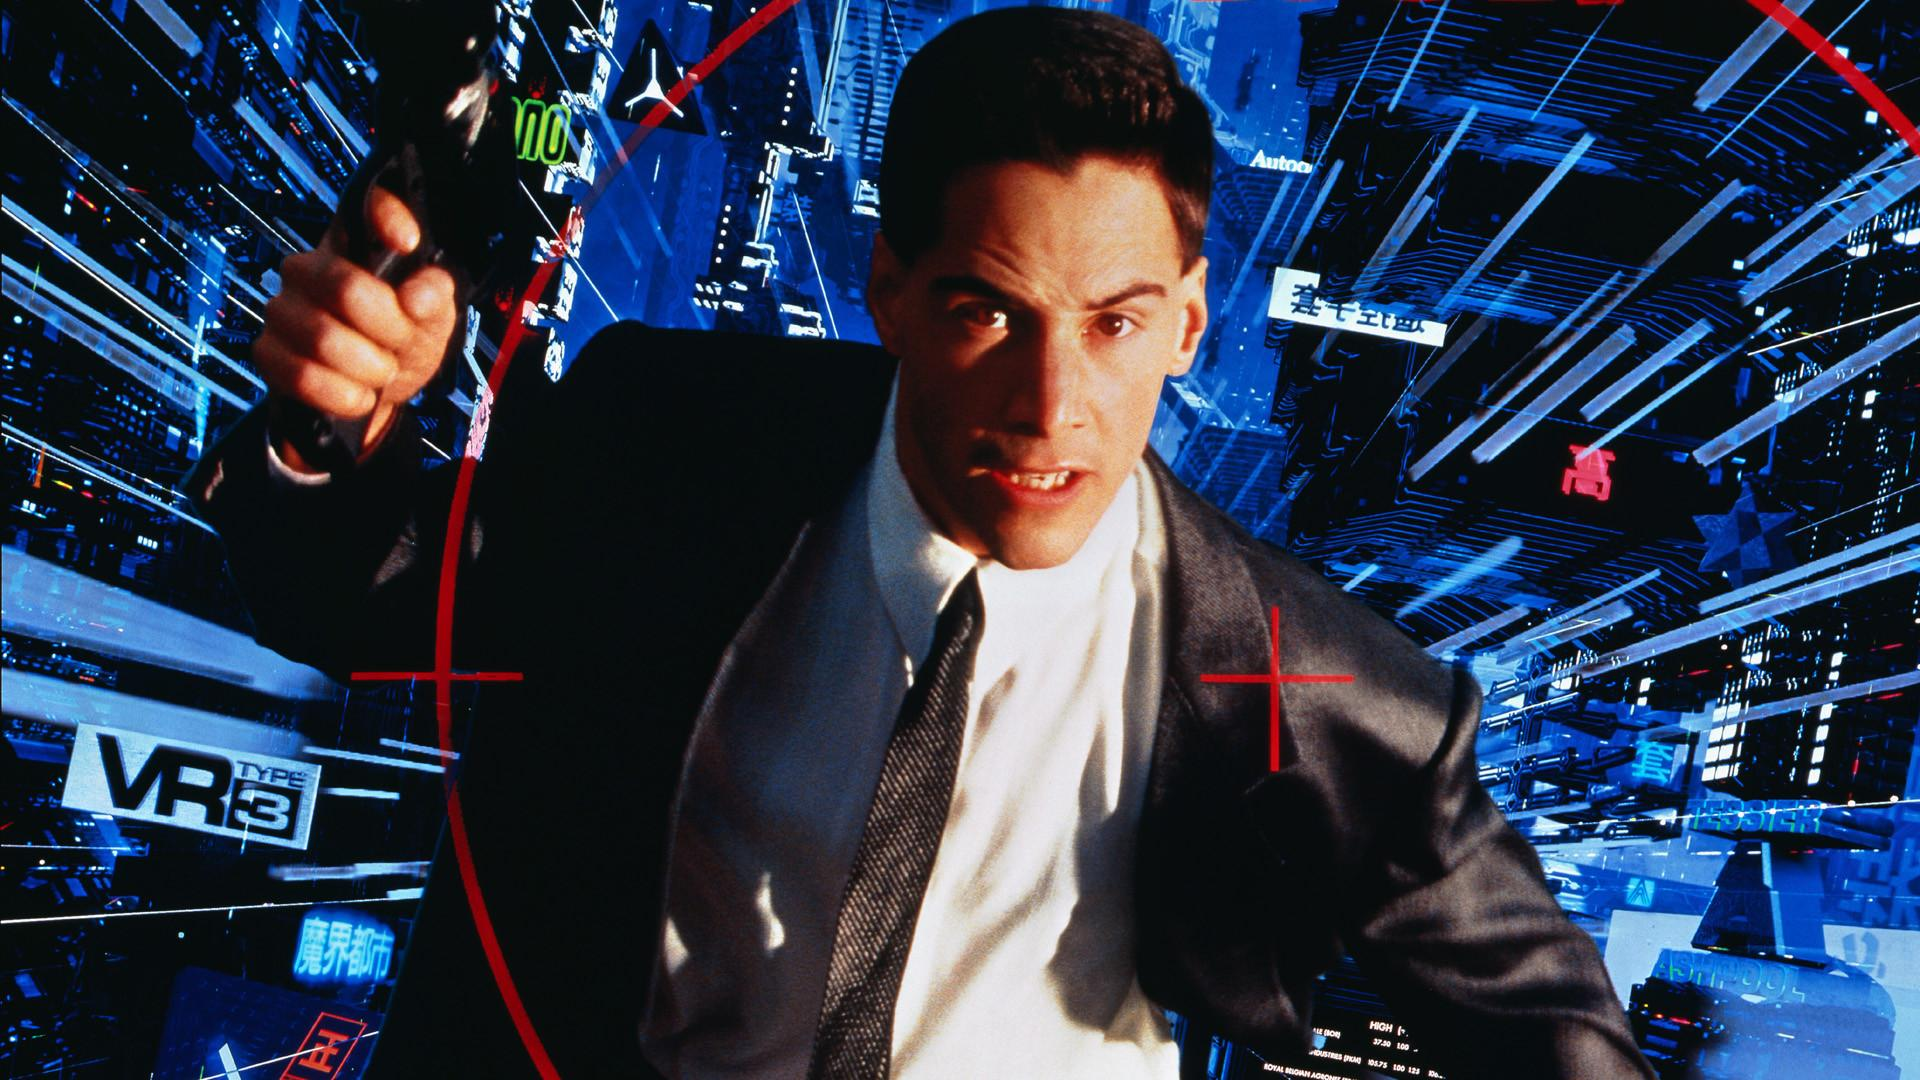 Johnny Mnemonic Full HD Wallpaper And Background Image